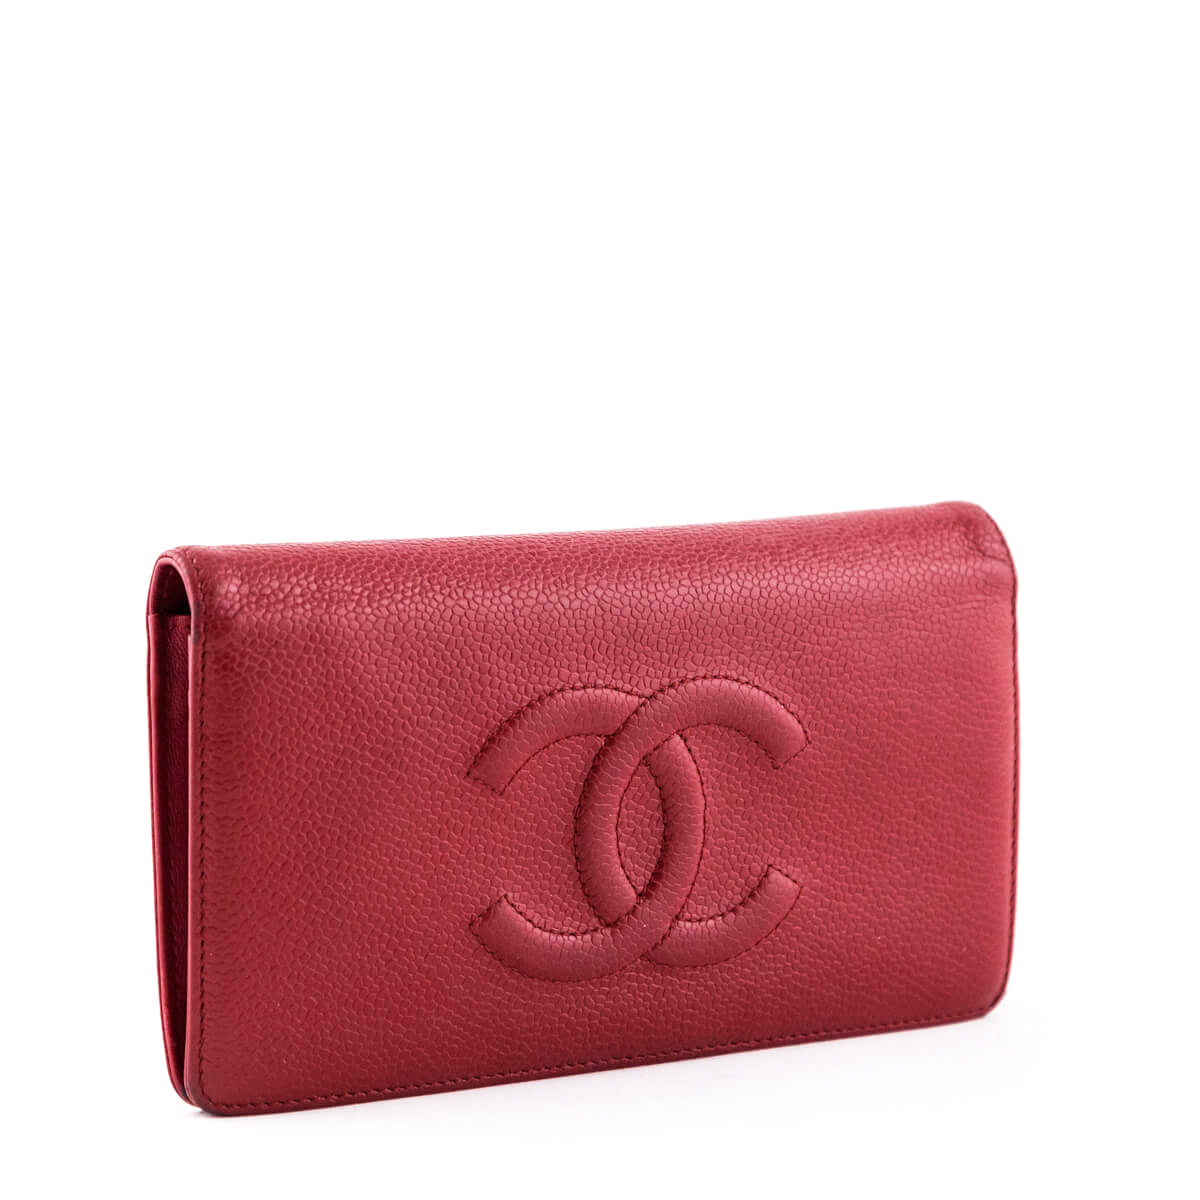 3746174781e1 ... Chanel Red Caviar Timeless CC Yen Wallet - LOVE that BAG - Preowned  Authentic Designer Handbags ...